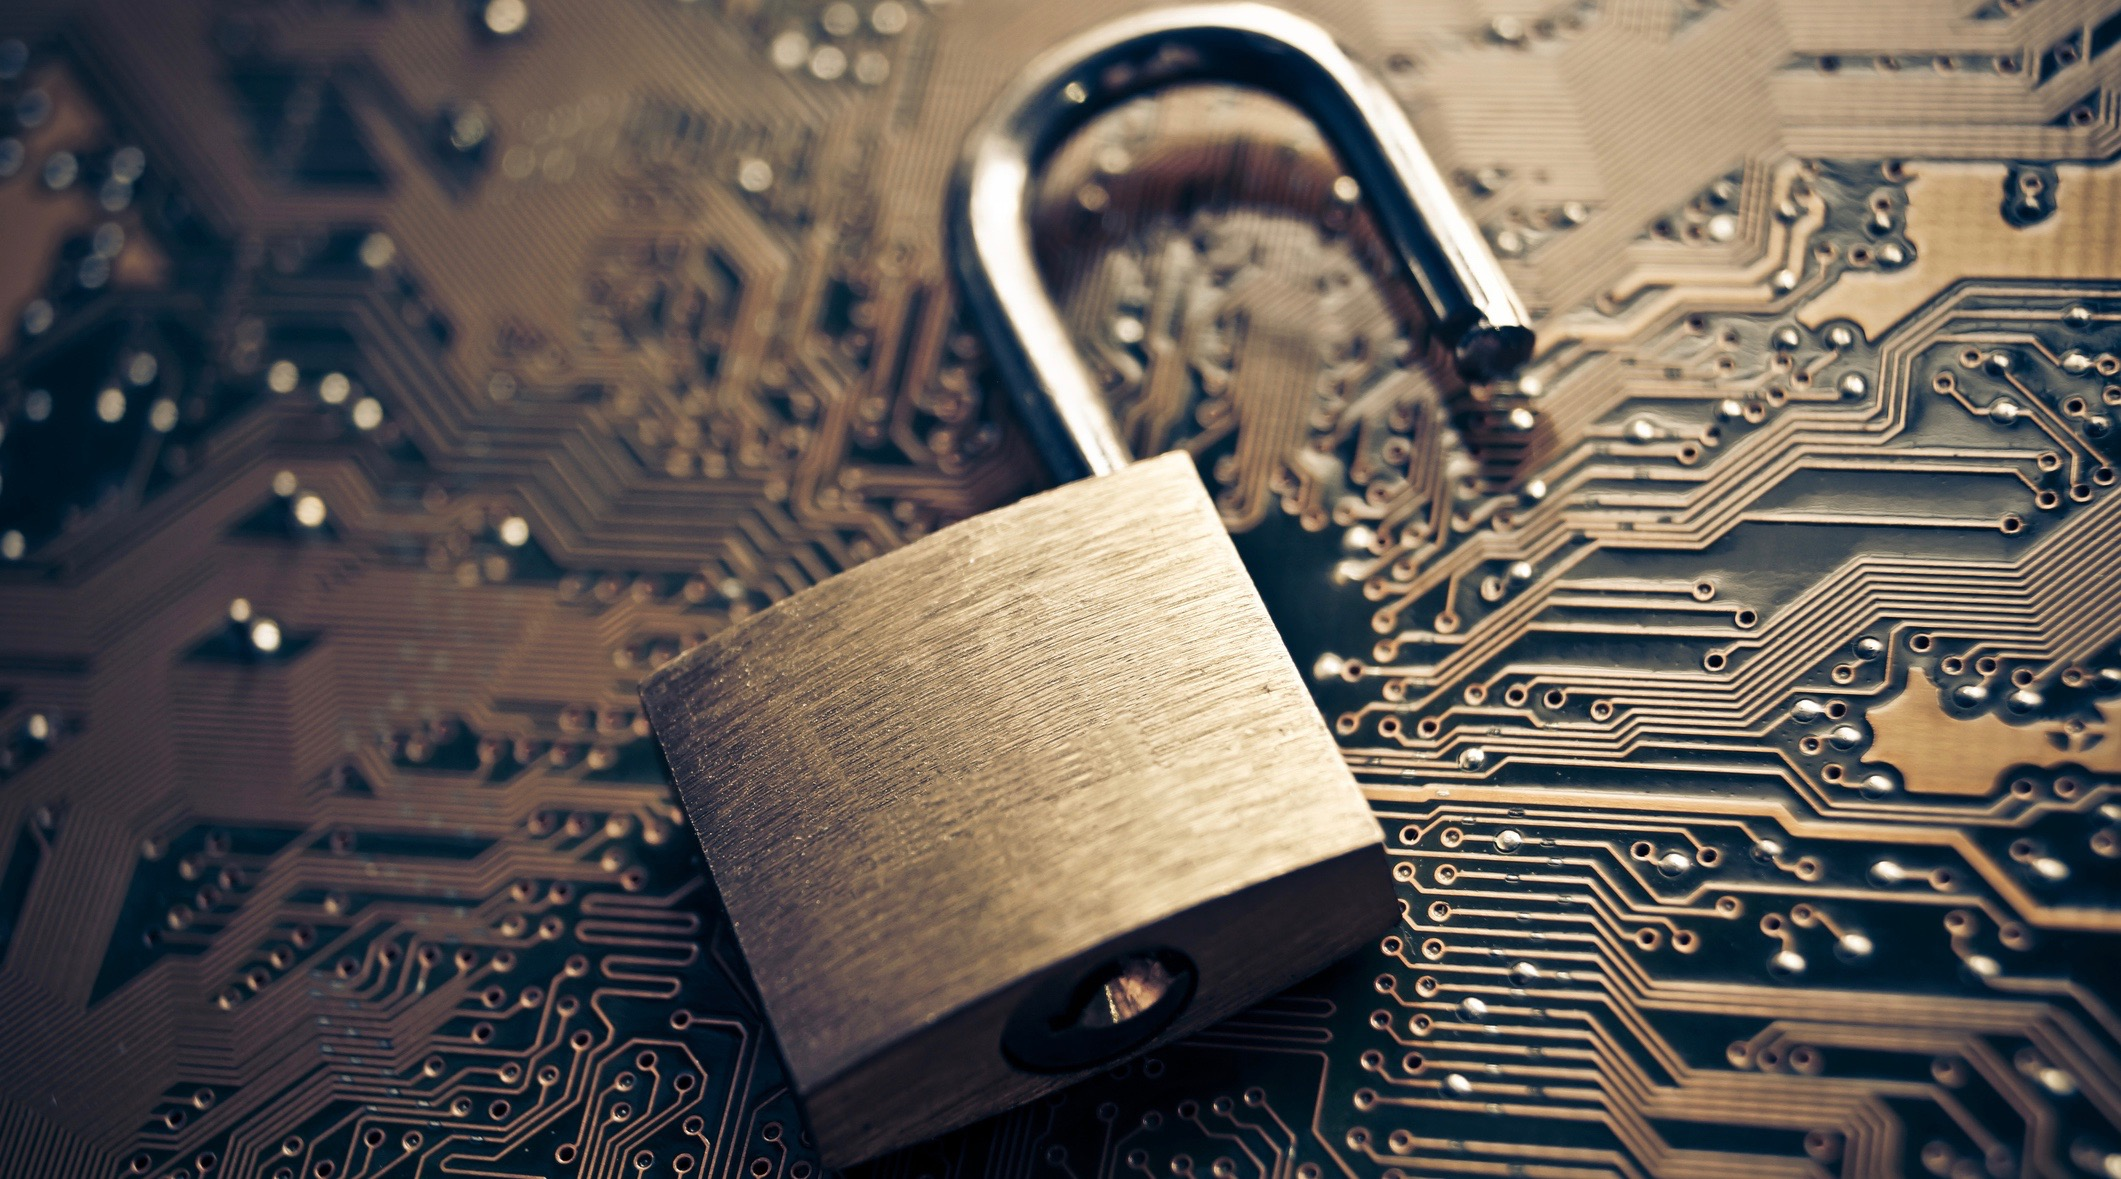 Open padlock on a motherboard signifying security breach